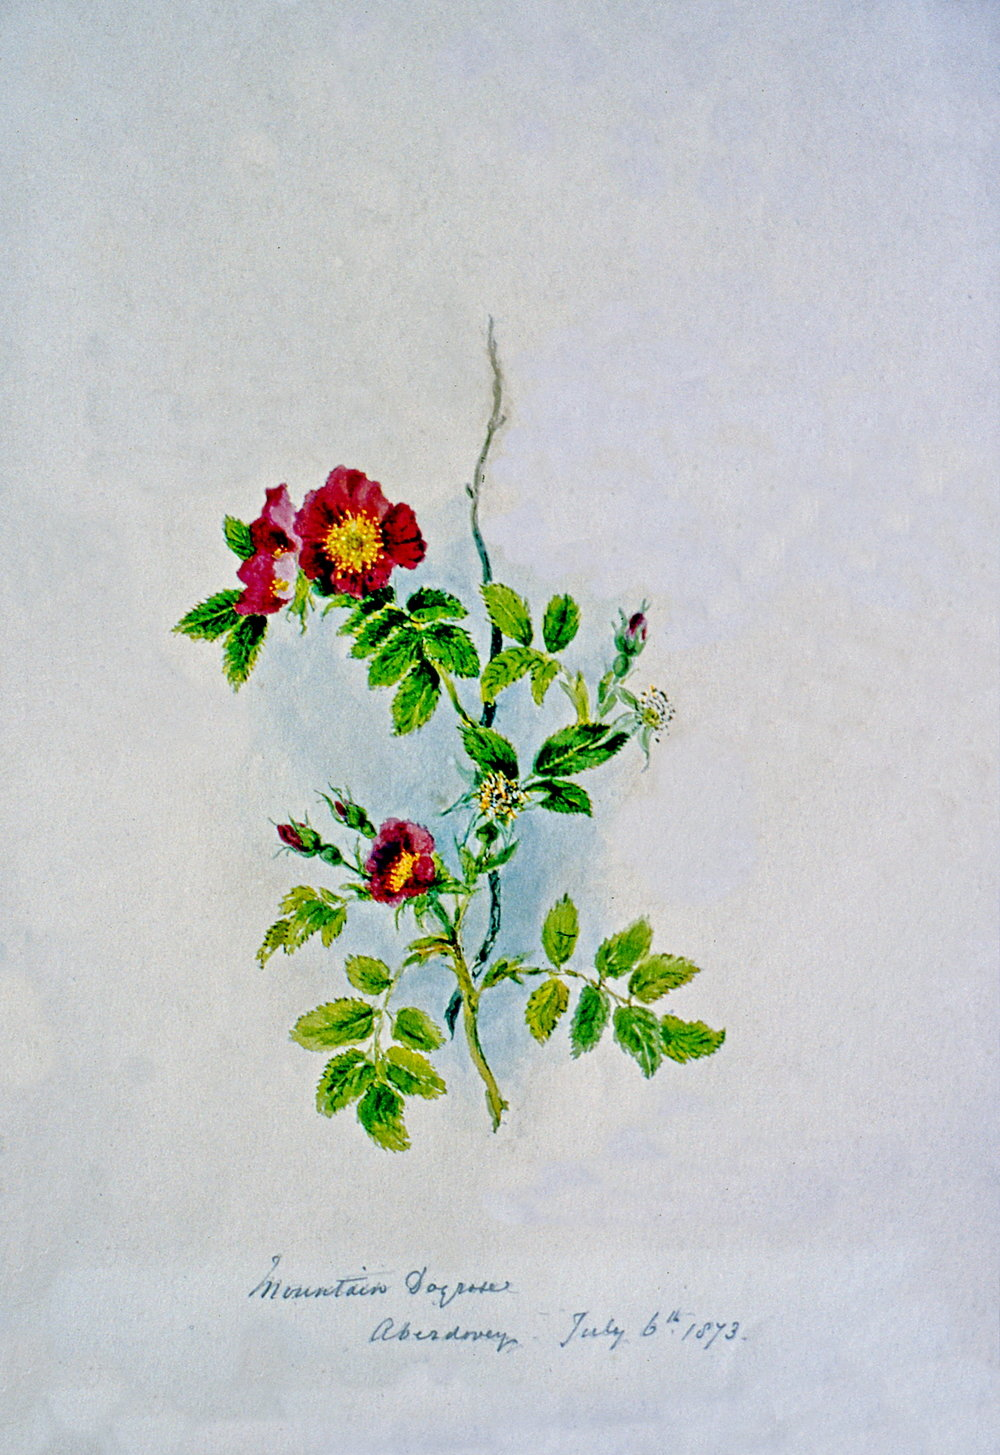 Mountain Dog Rose - Aberdovey July 6 1873 , July 1873, Julia Bullock Webster, watercolour on paper, 35.3 cm x 25.1 cm, 2003.02.27, gift of The Grist Mill at Keremeos